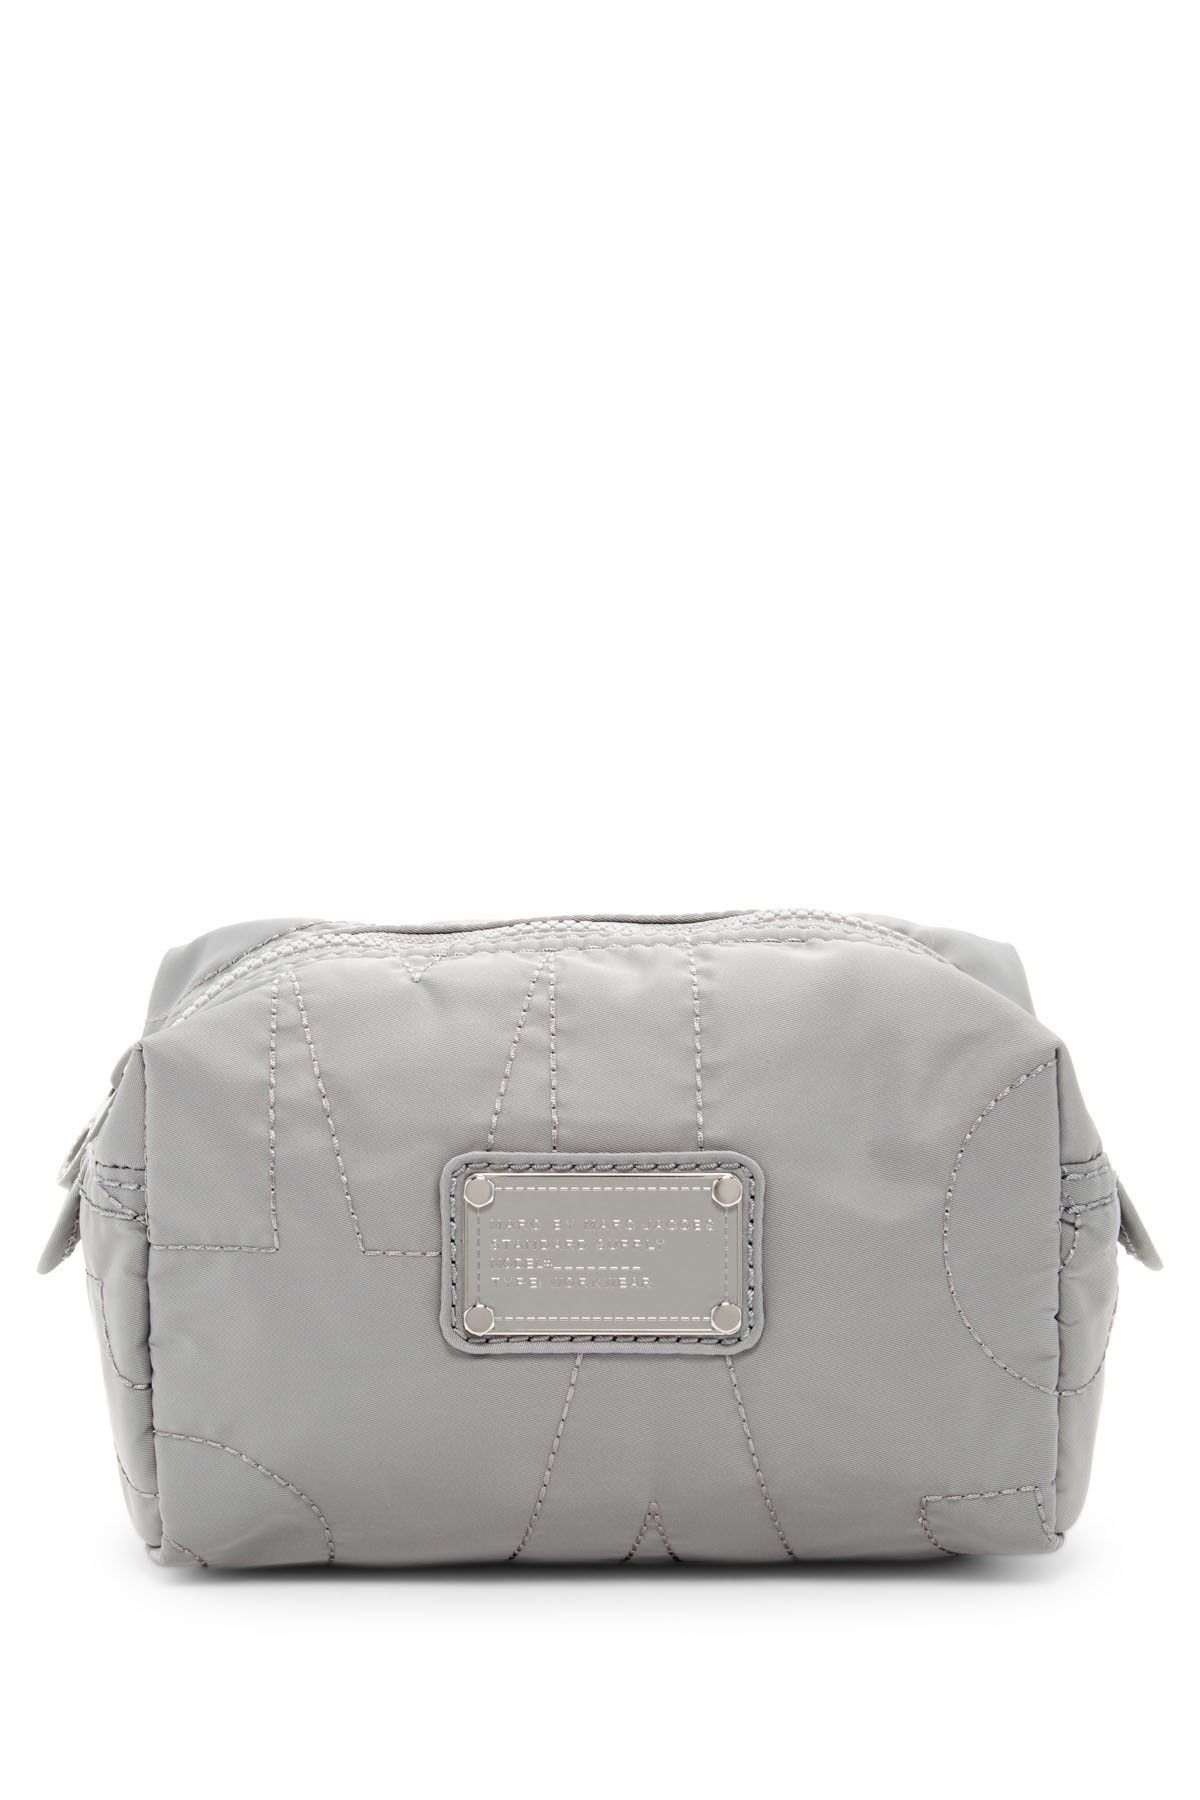 Marc by Marc Jacobs | Pretty Cosmetic Bag | Cosmetic bag